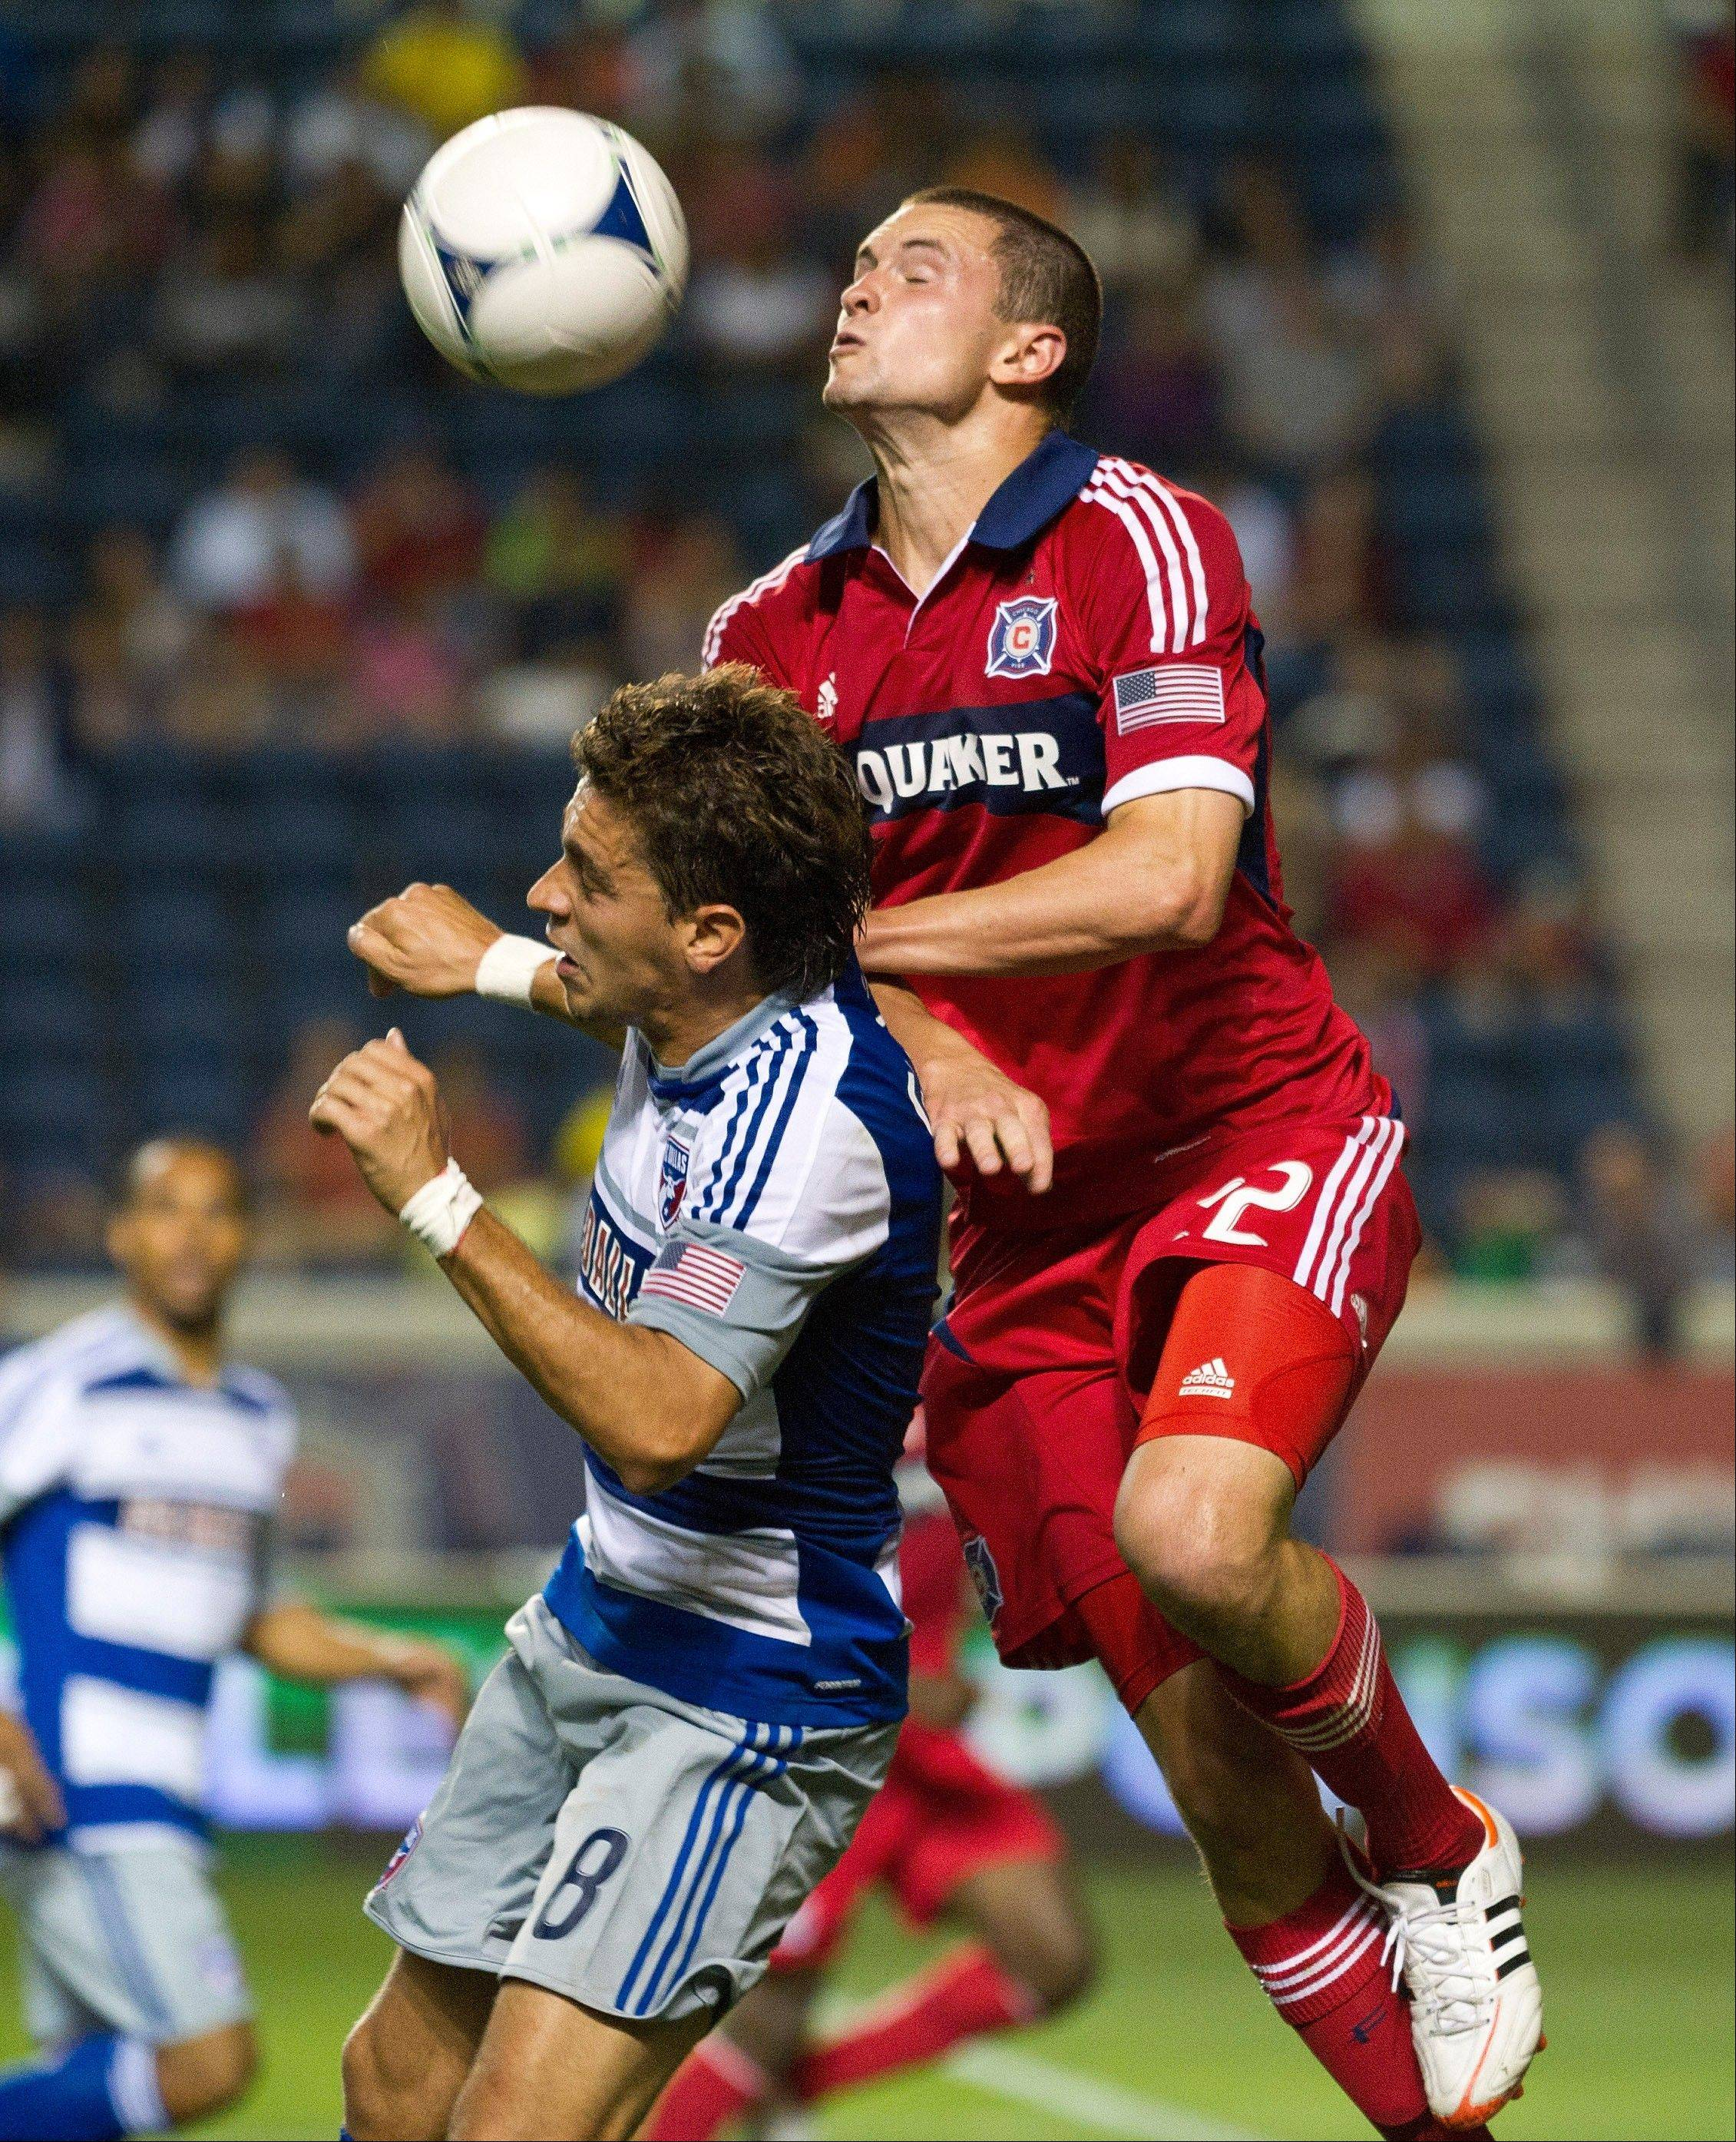 Chicago Fire defender Austin Berry, right, has earned Rookie of the Year honors in the MLS for the 2012 season.